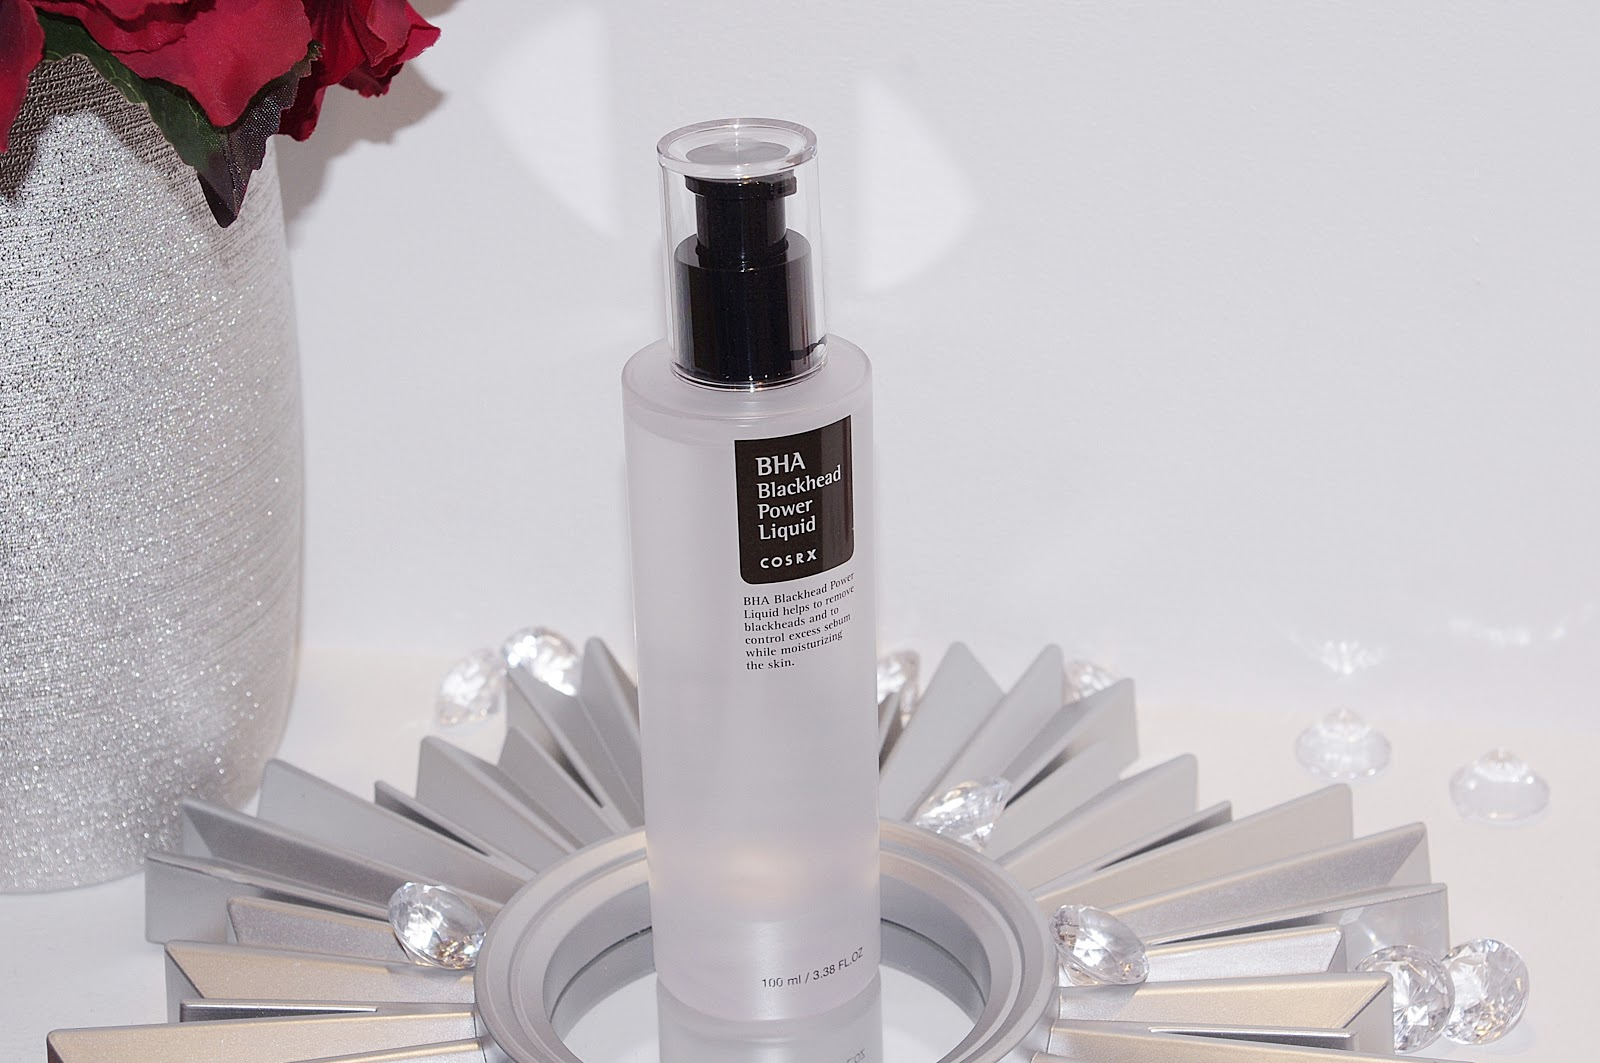 BHA Blackhead Power Liquid Cosrx